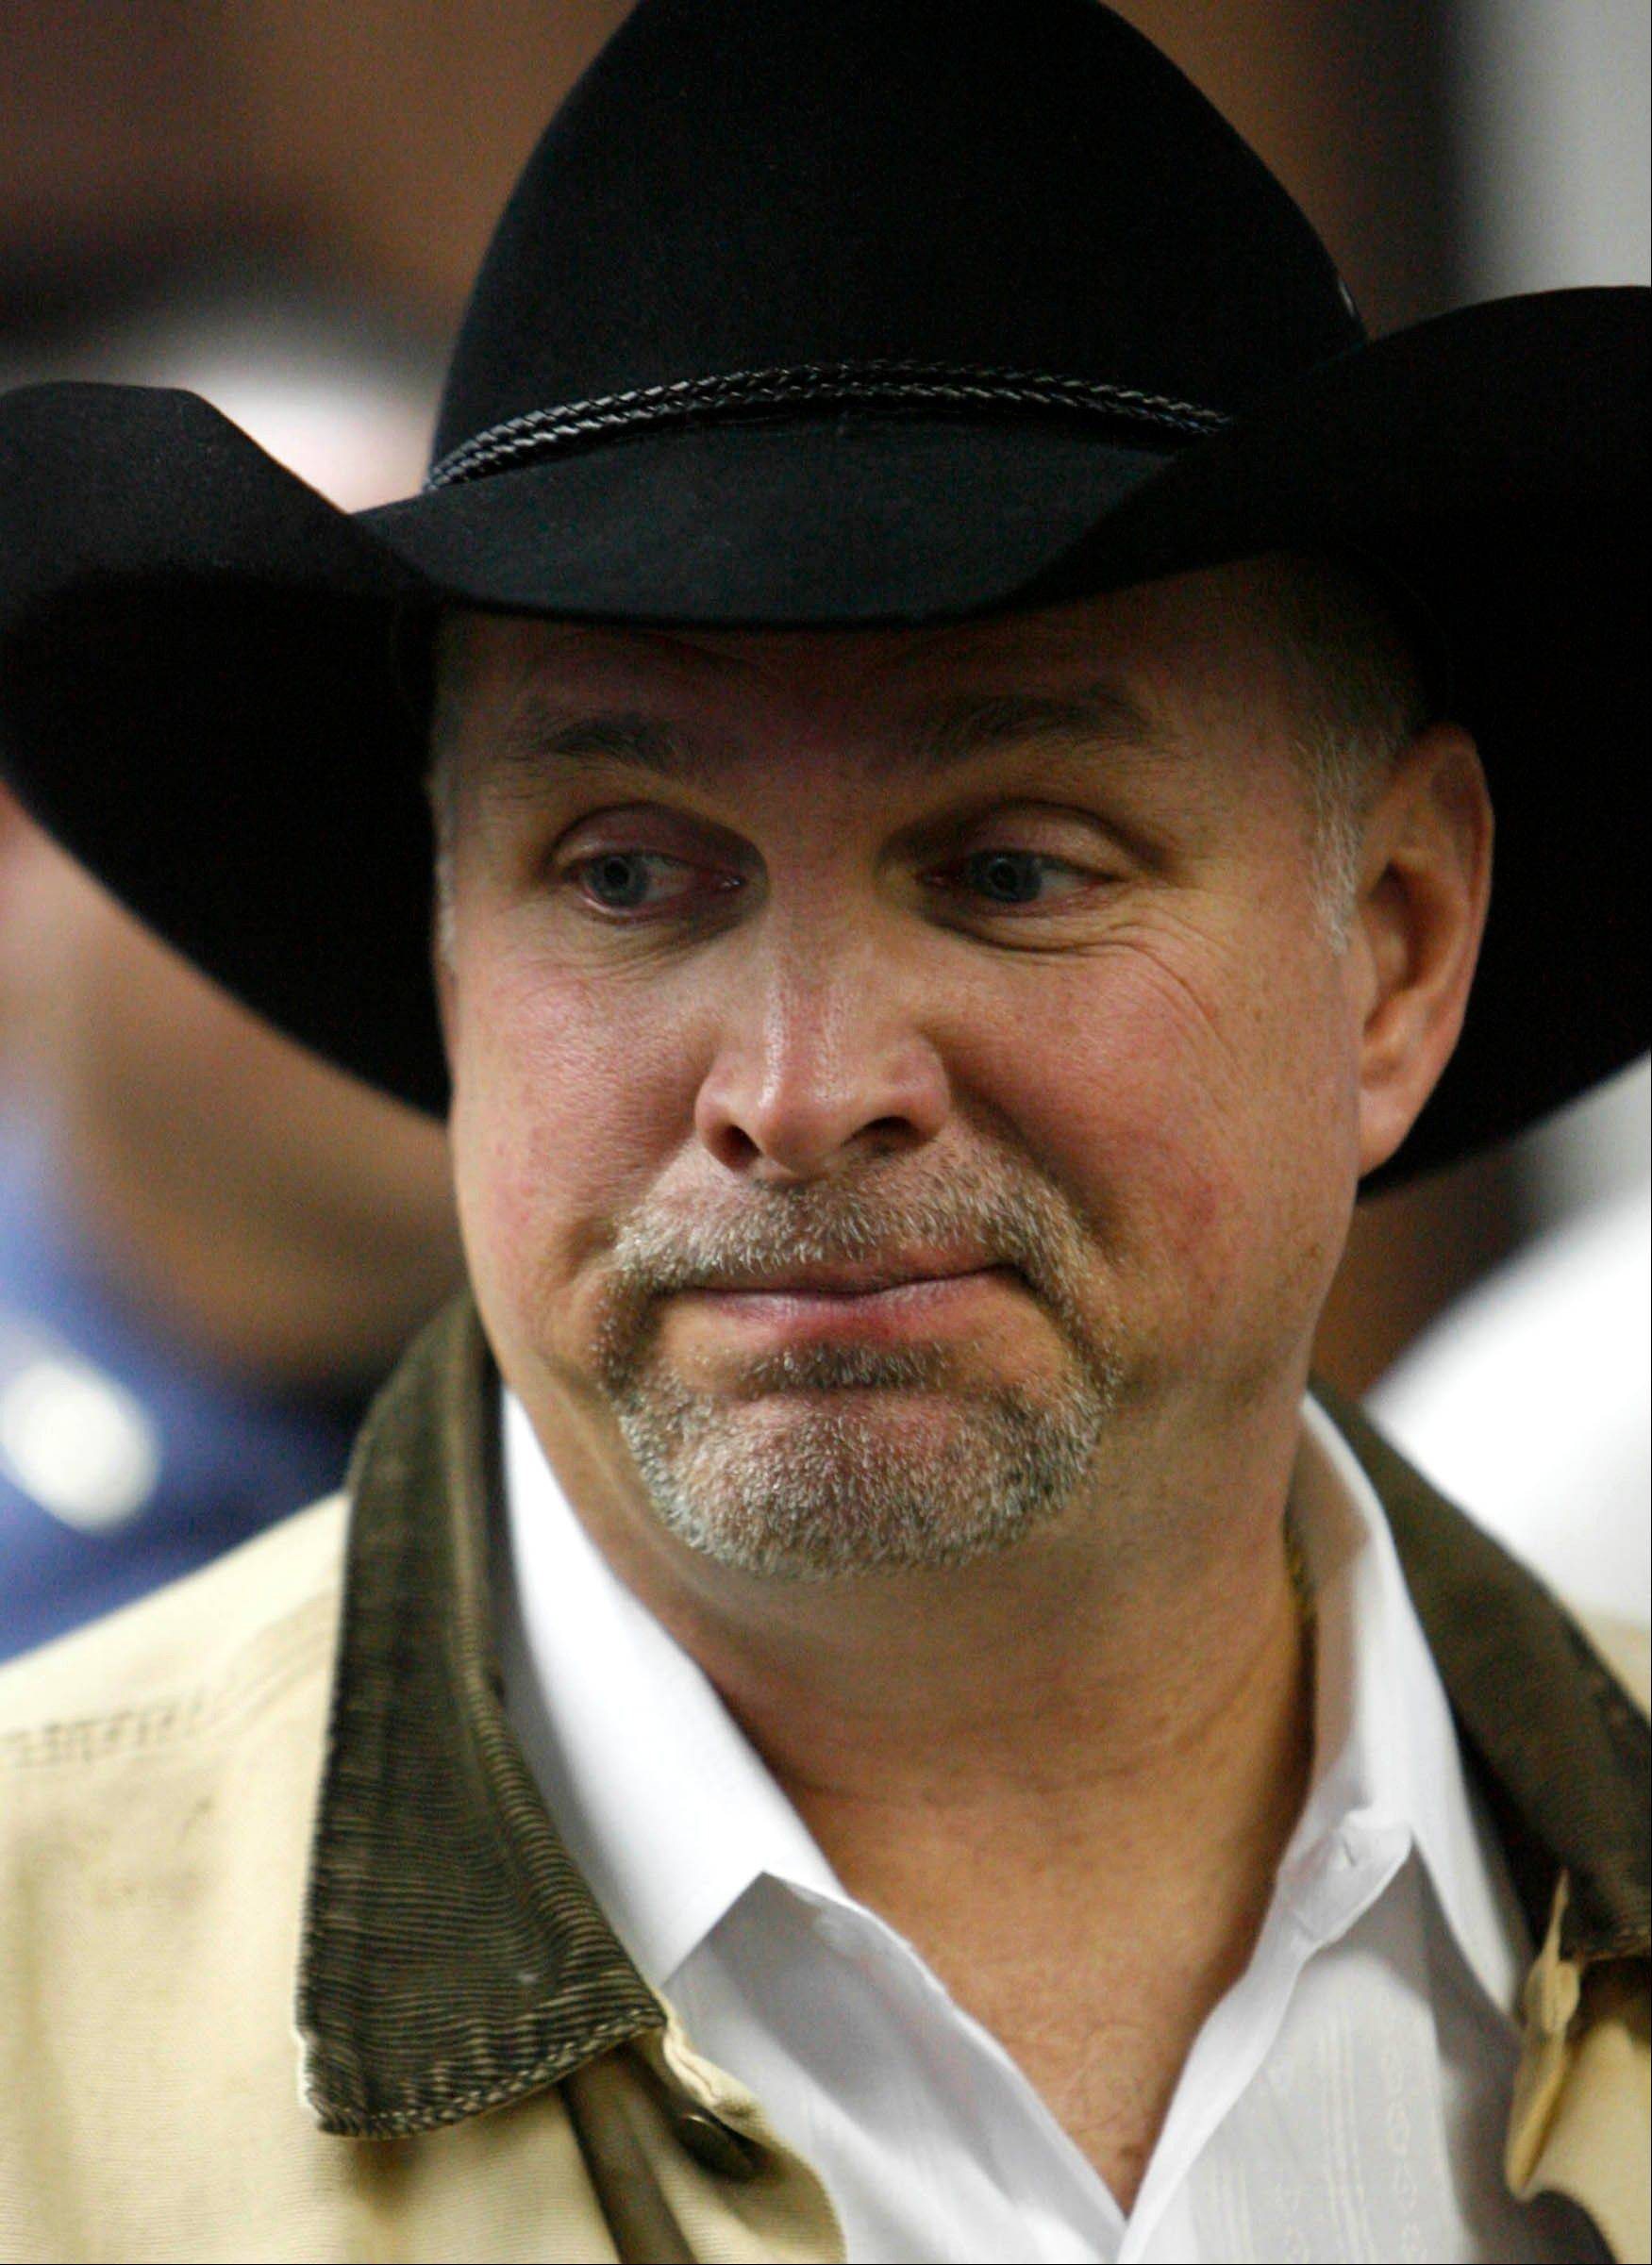 Garth Brooks gets nod for Country Music Hall of Fame